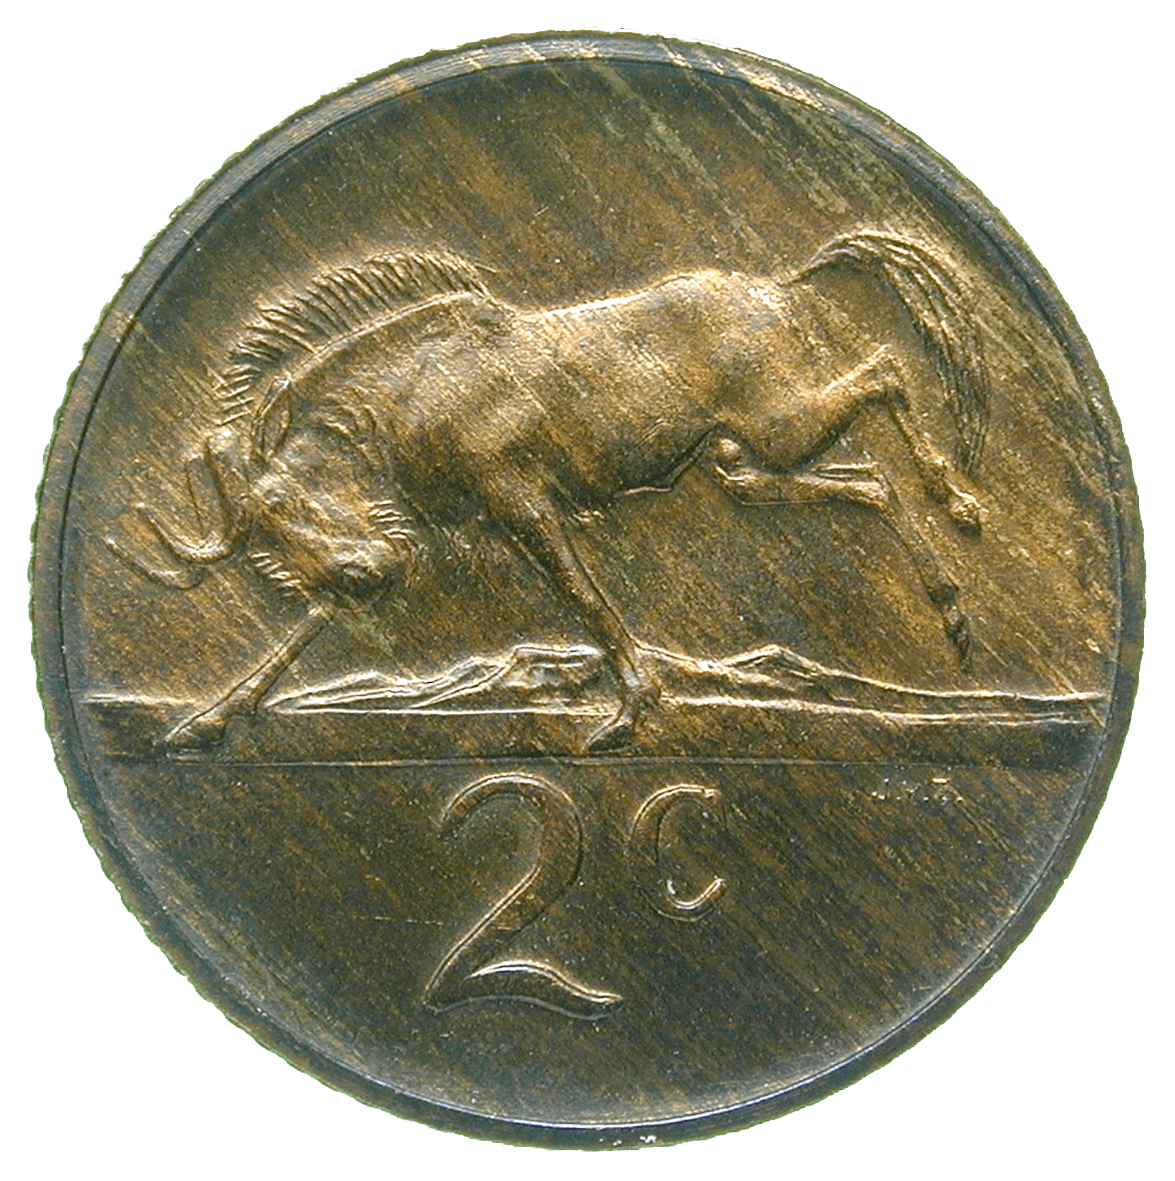 Republic of South Africa, 2 Cents 1980 (reverse)